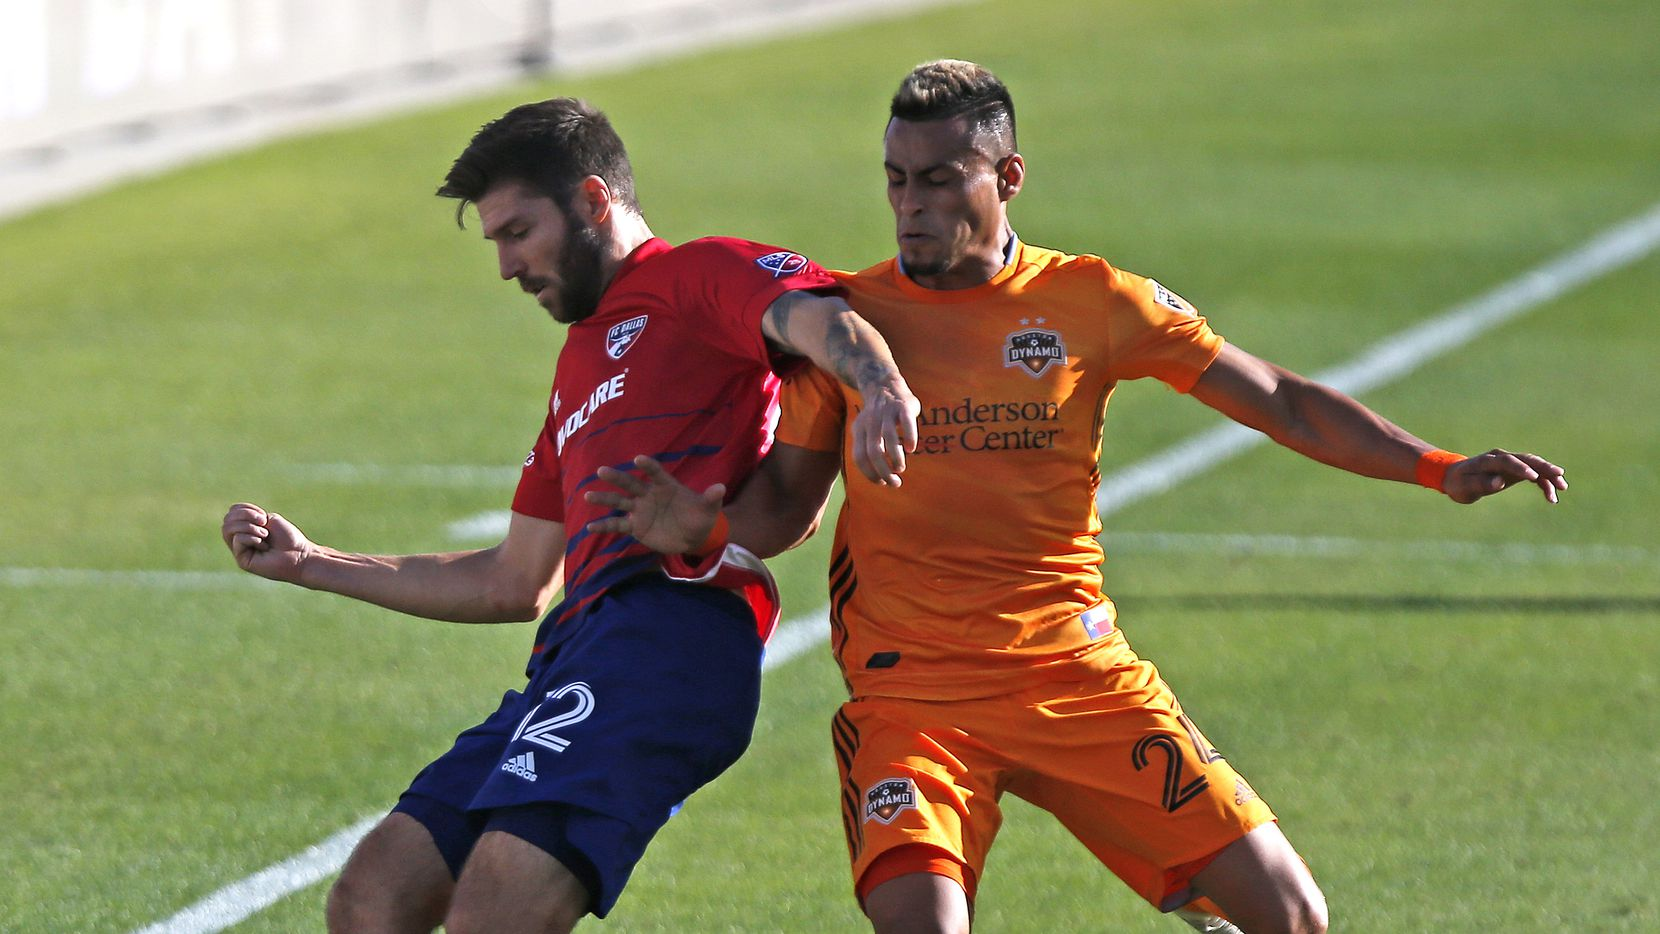 FC Dallas' Ryan Hollingshead (12) stops the ball as Houston Dynamo midfielder Darwin Ceren (24) defends during the second half as FC Dallas hosted the Houston Dynamo at Toyota Stadium in Frisco on Saturday afternoon, October 31, 2020.